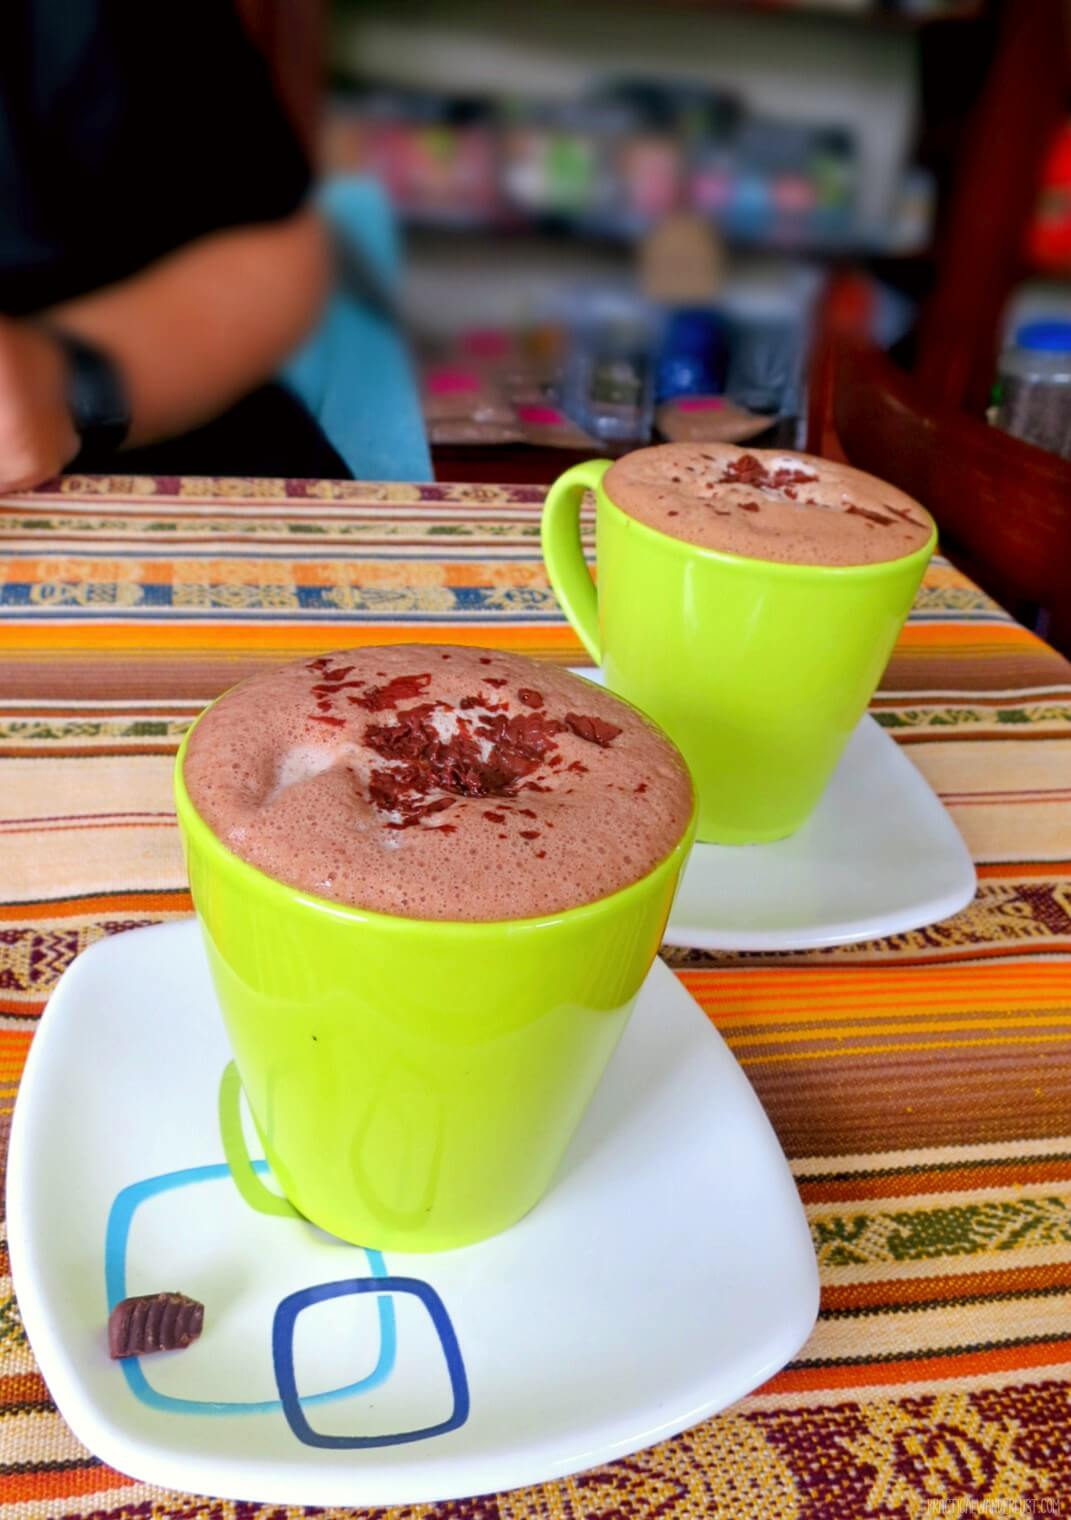 Delicious Ecuadorian hot chocolate at Amore chocolate shop in Baños, Ecuador.